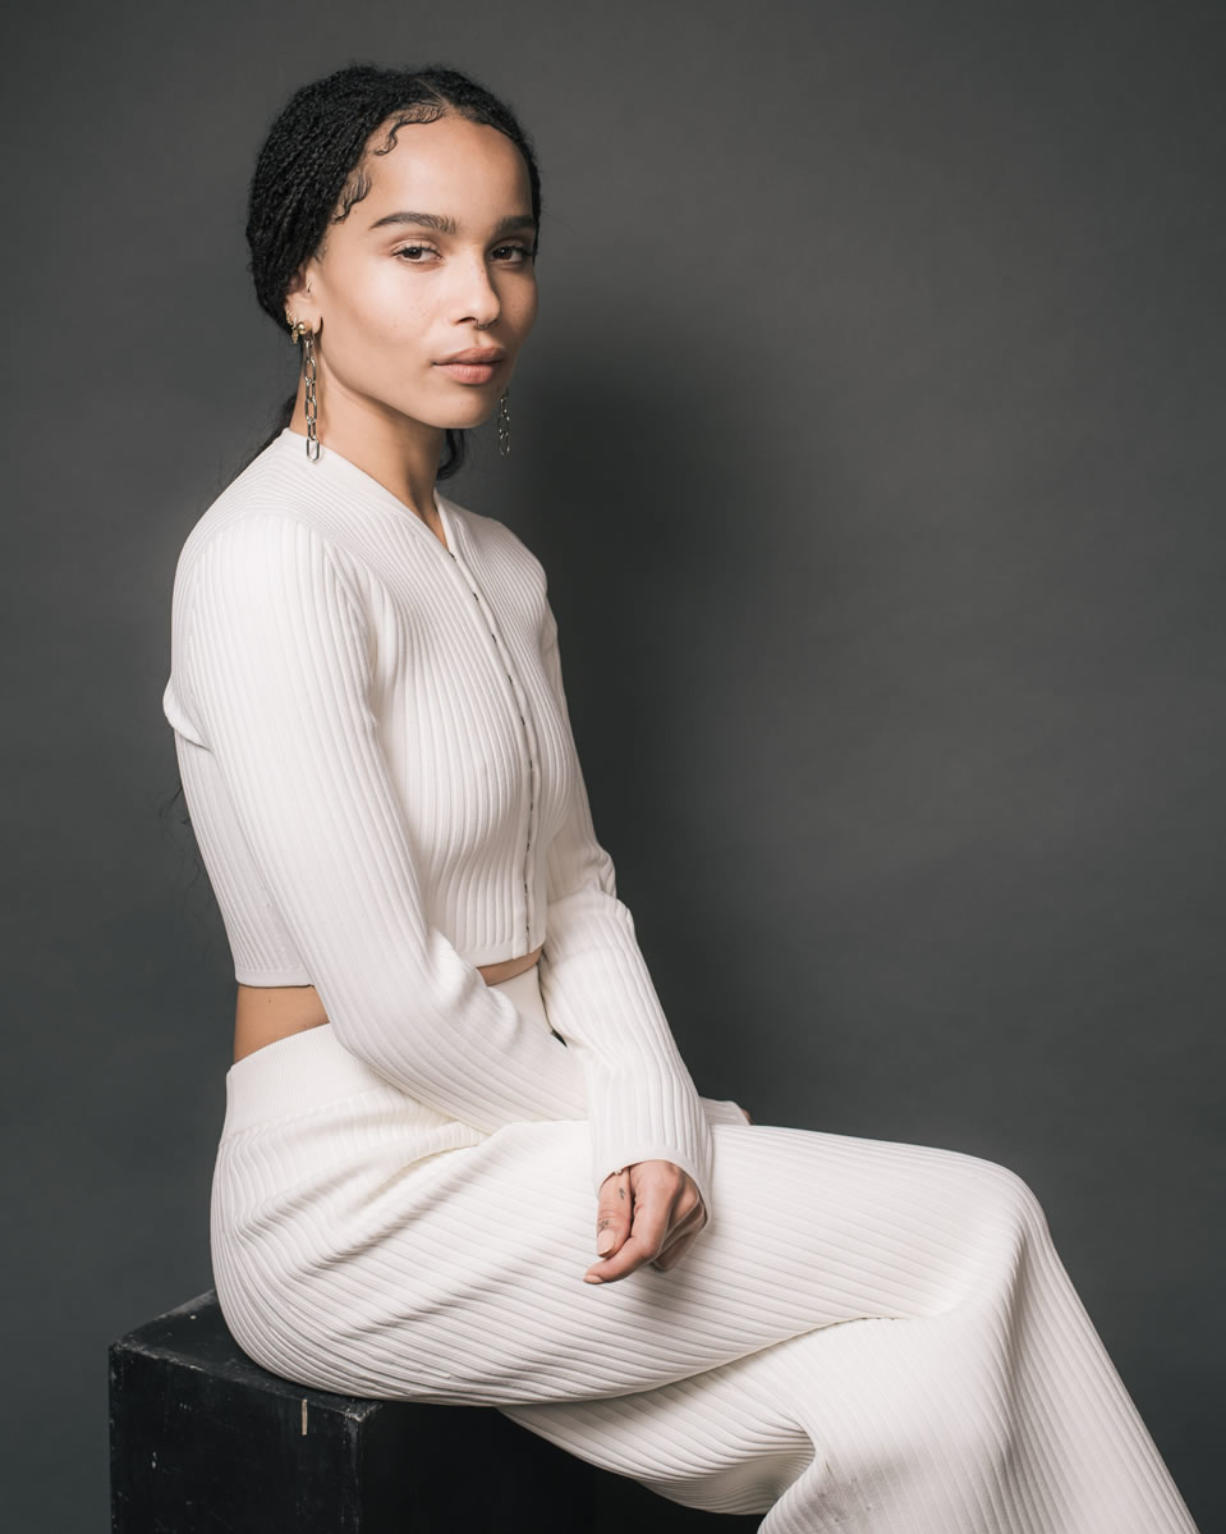 """Actress Zoe Kravitz stars in the film """"The Divergent Series: Allegiant."""" (Casey Curry/Invision)"""